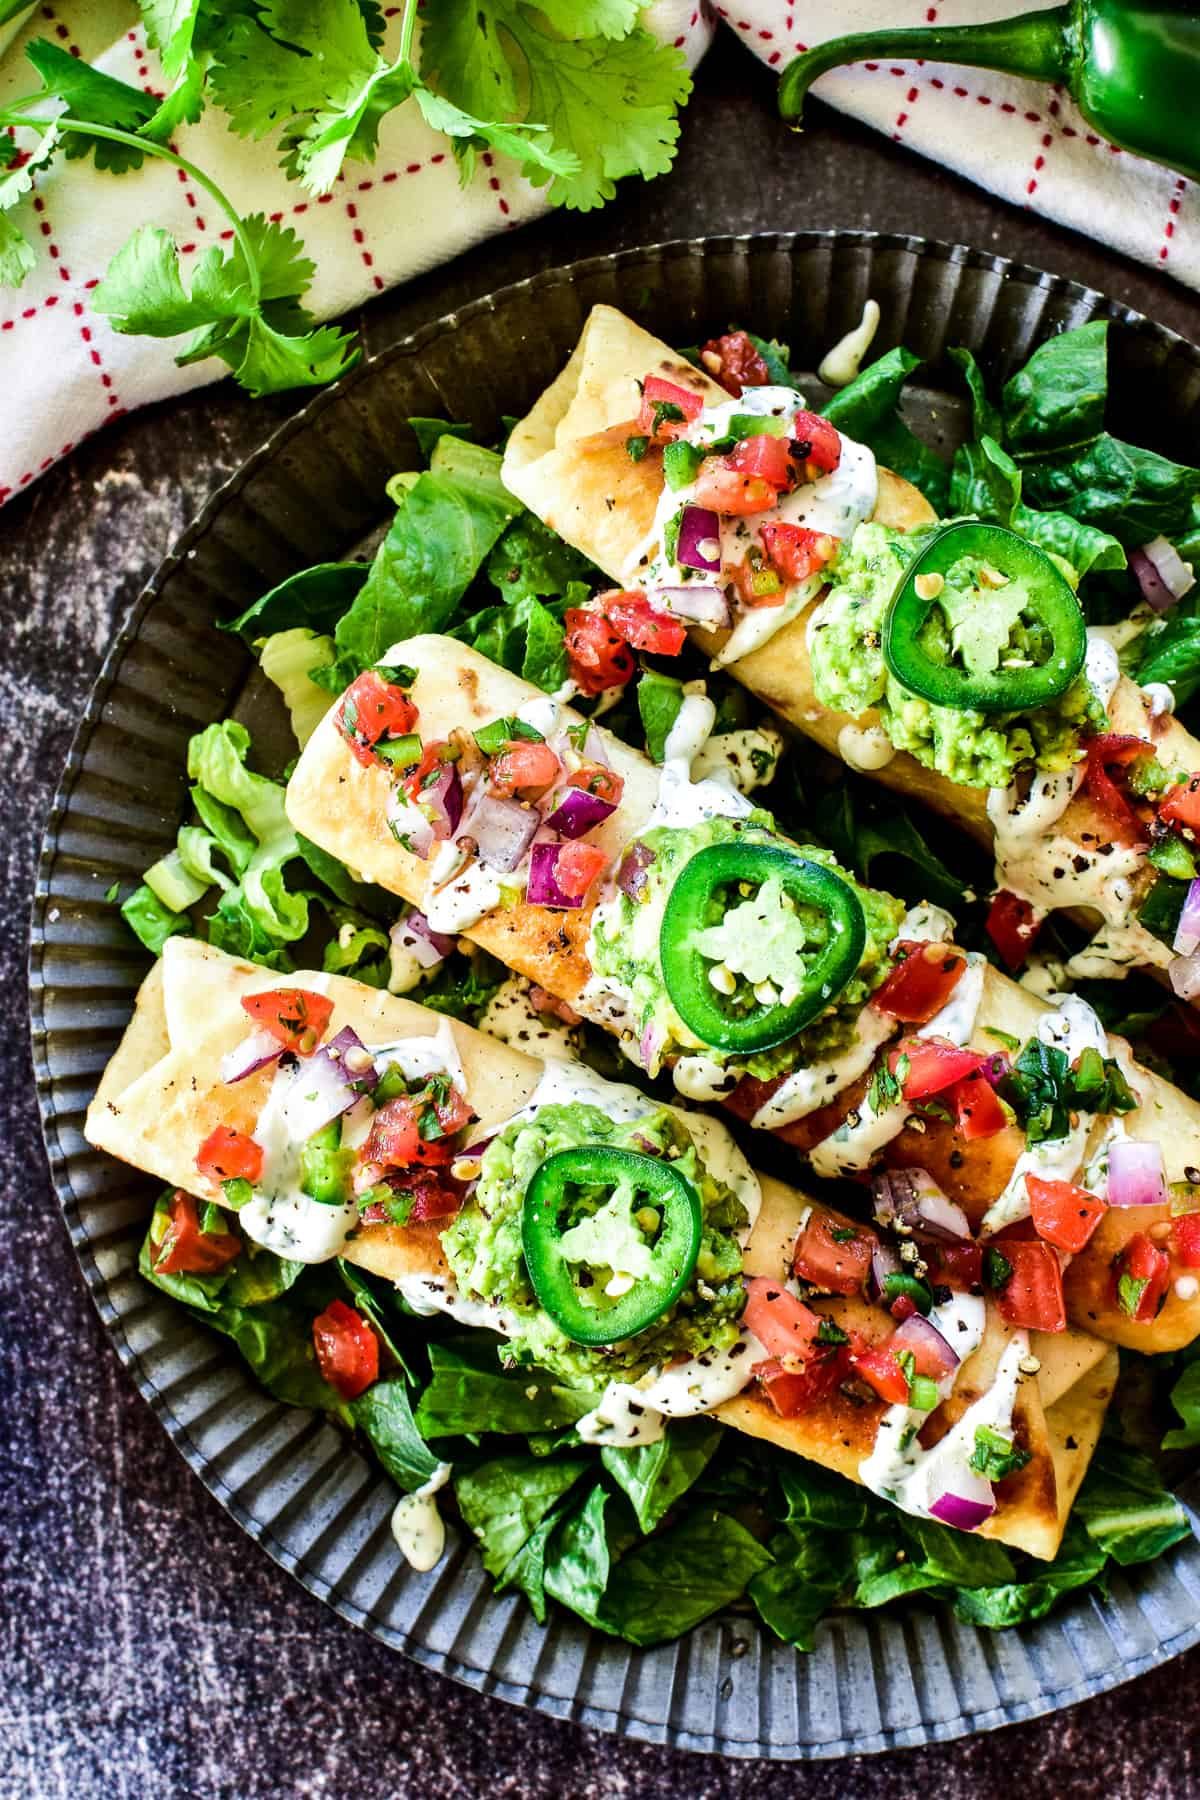 Overhead shot of Chicken Flautas with toppings